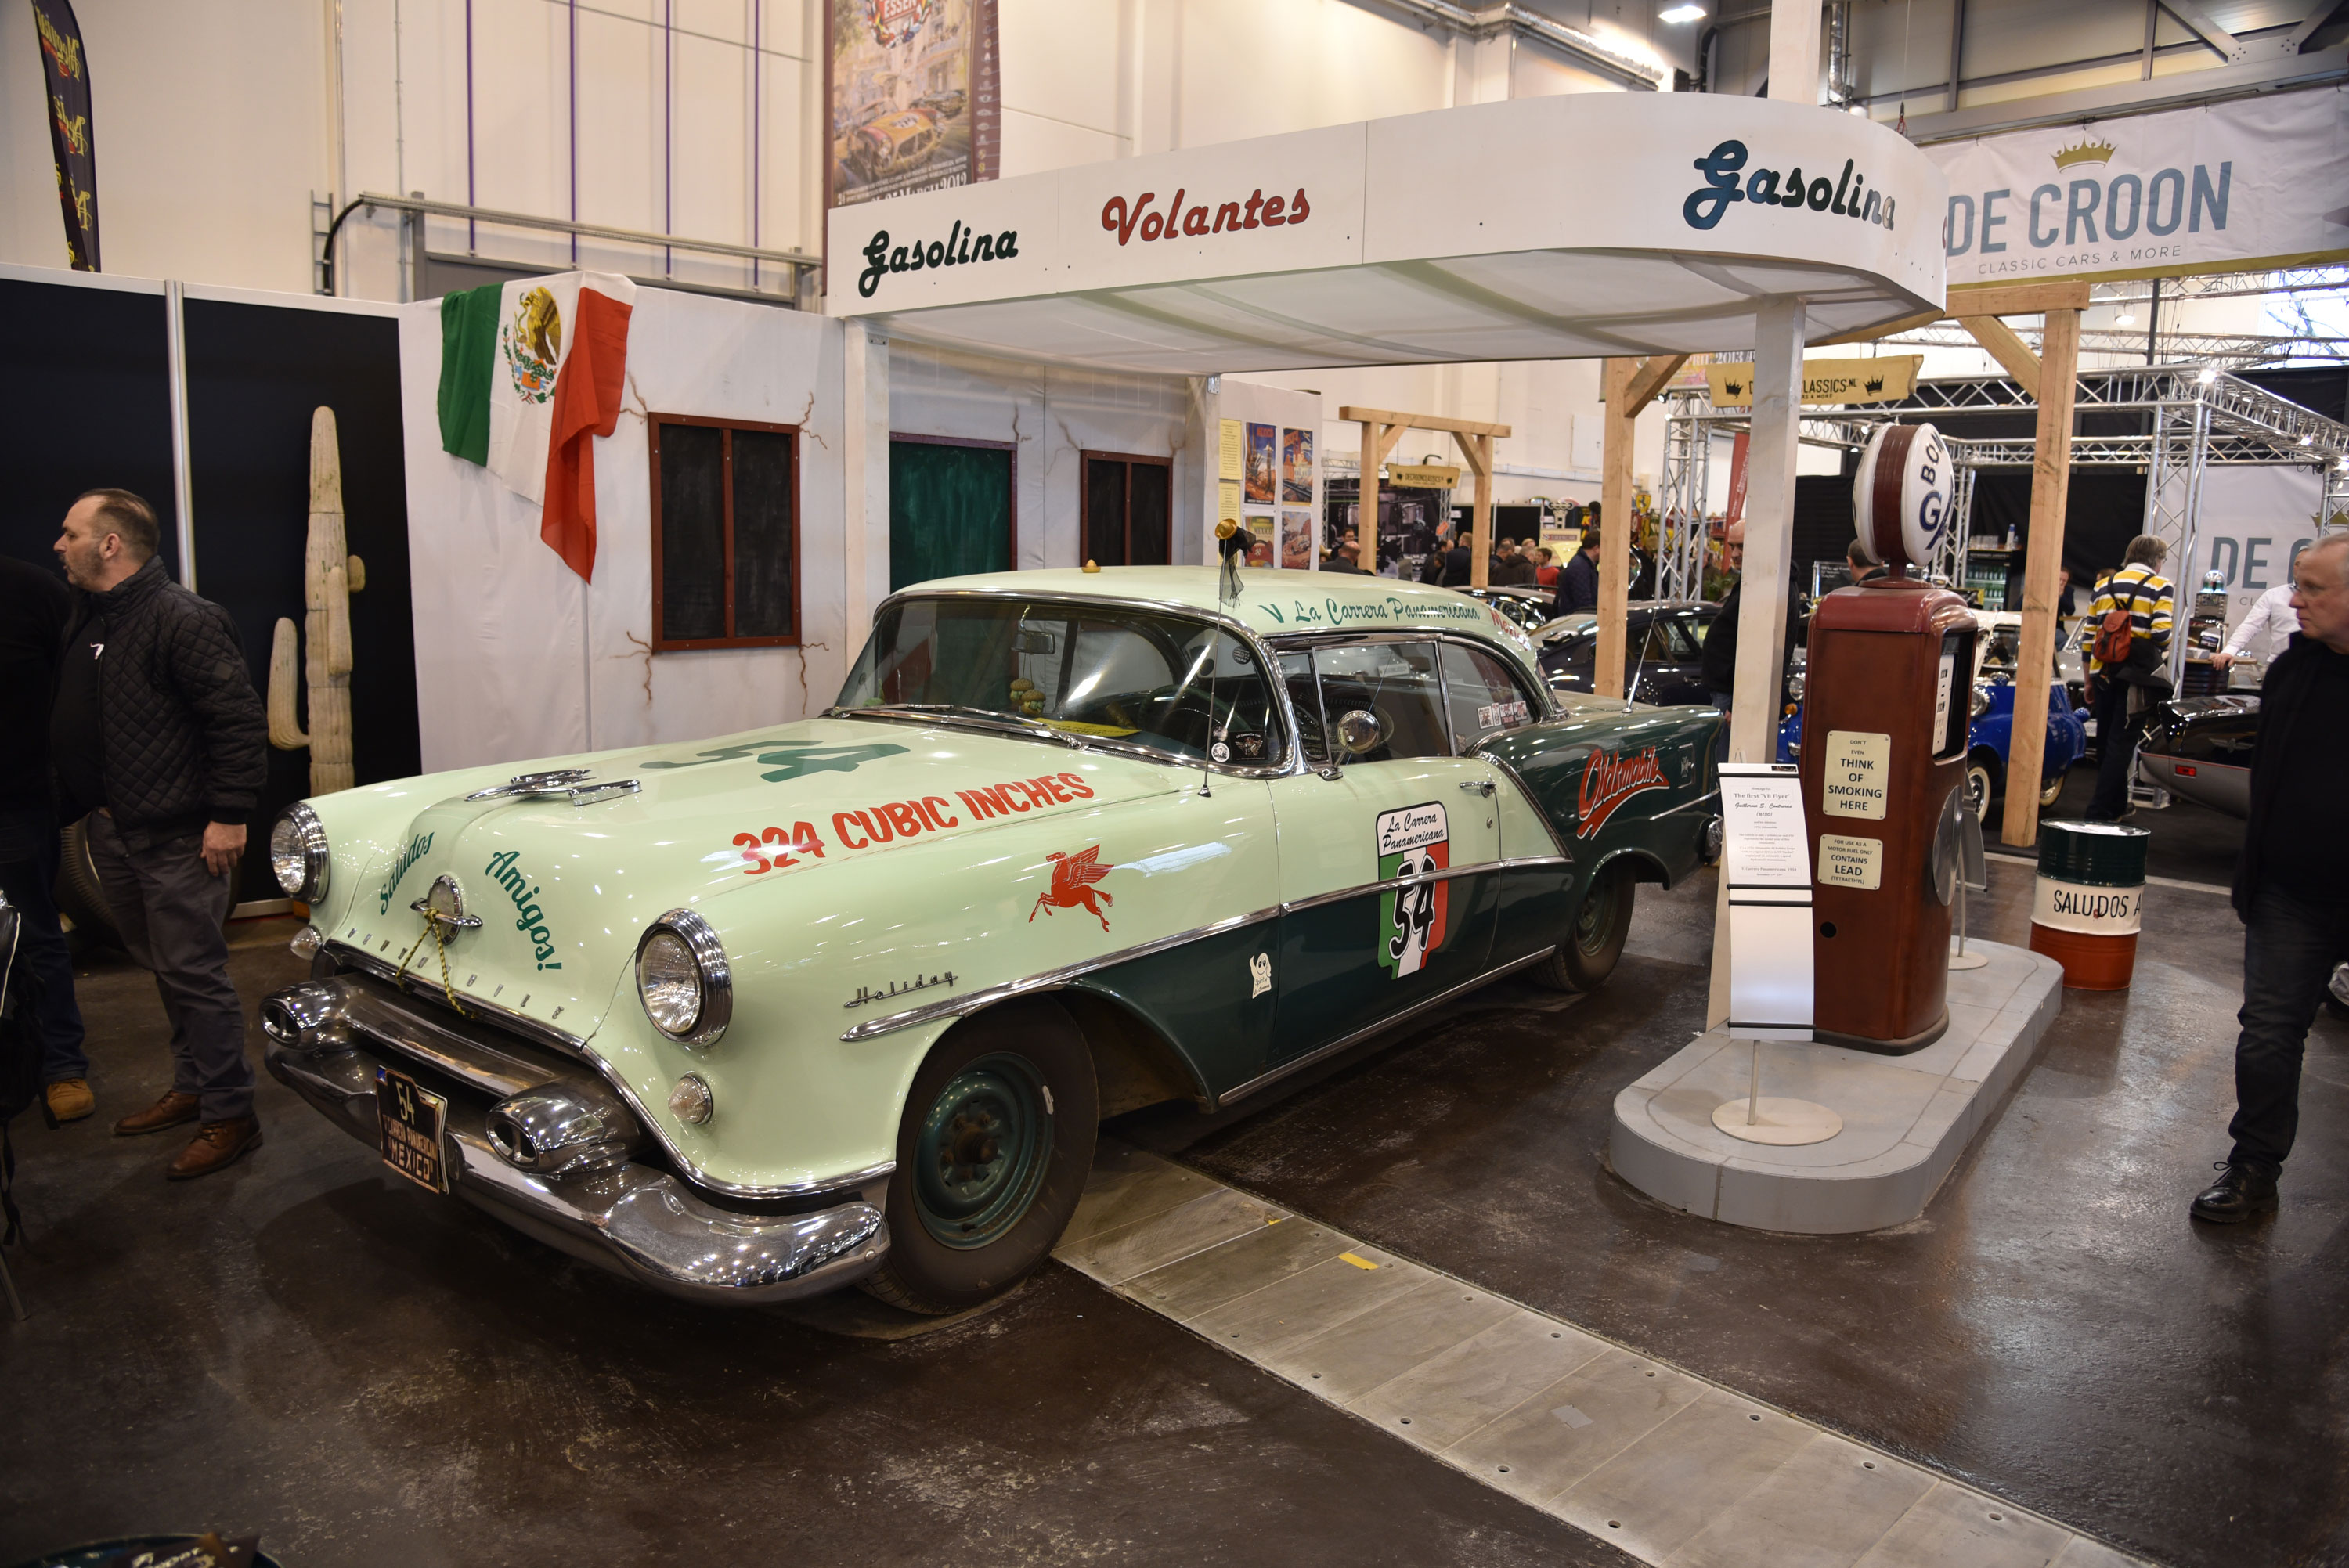 A 1955 Oldsmobile parked up in an old Mexican gas station was part of a booth intended to lure Europeans into competing in the annual La Carrera Panamericana vintage road rally in Mexico.